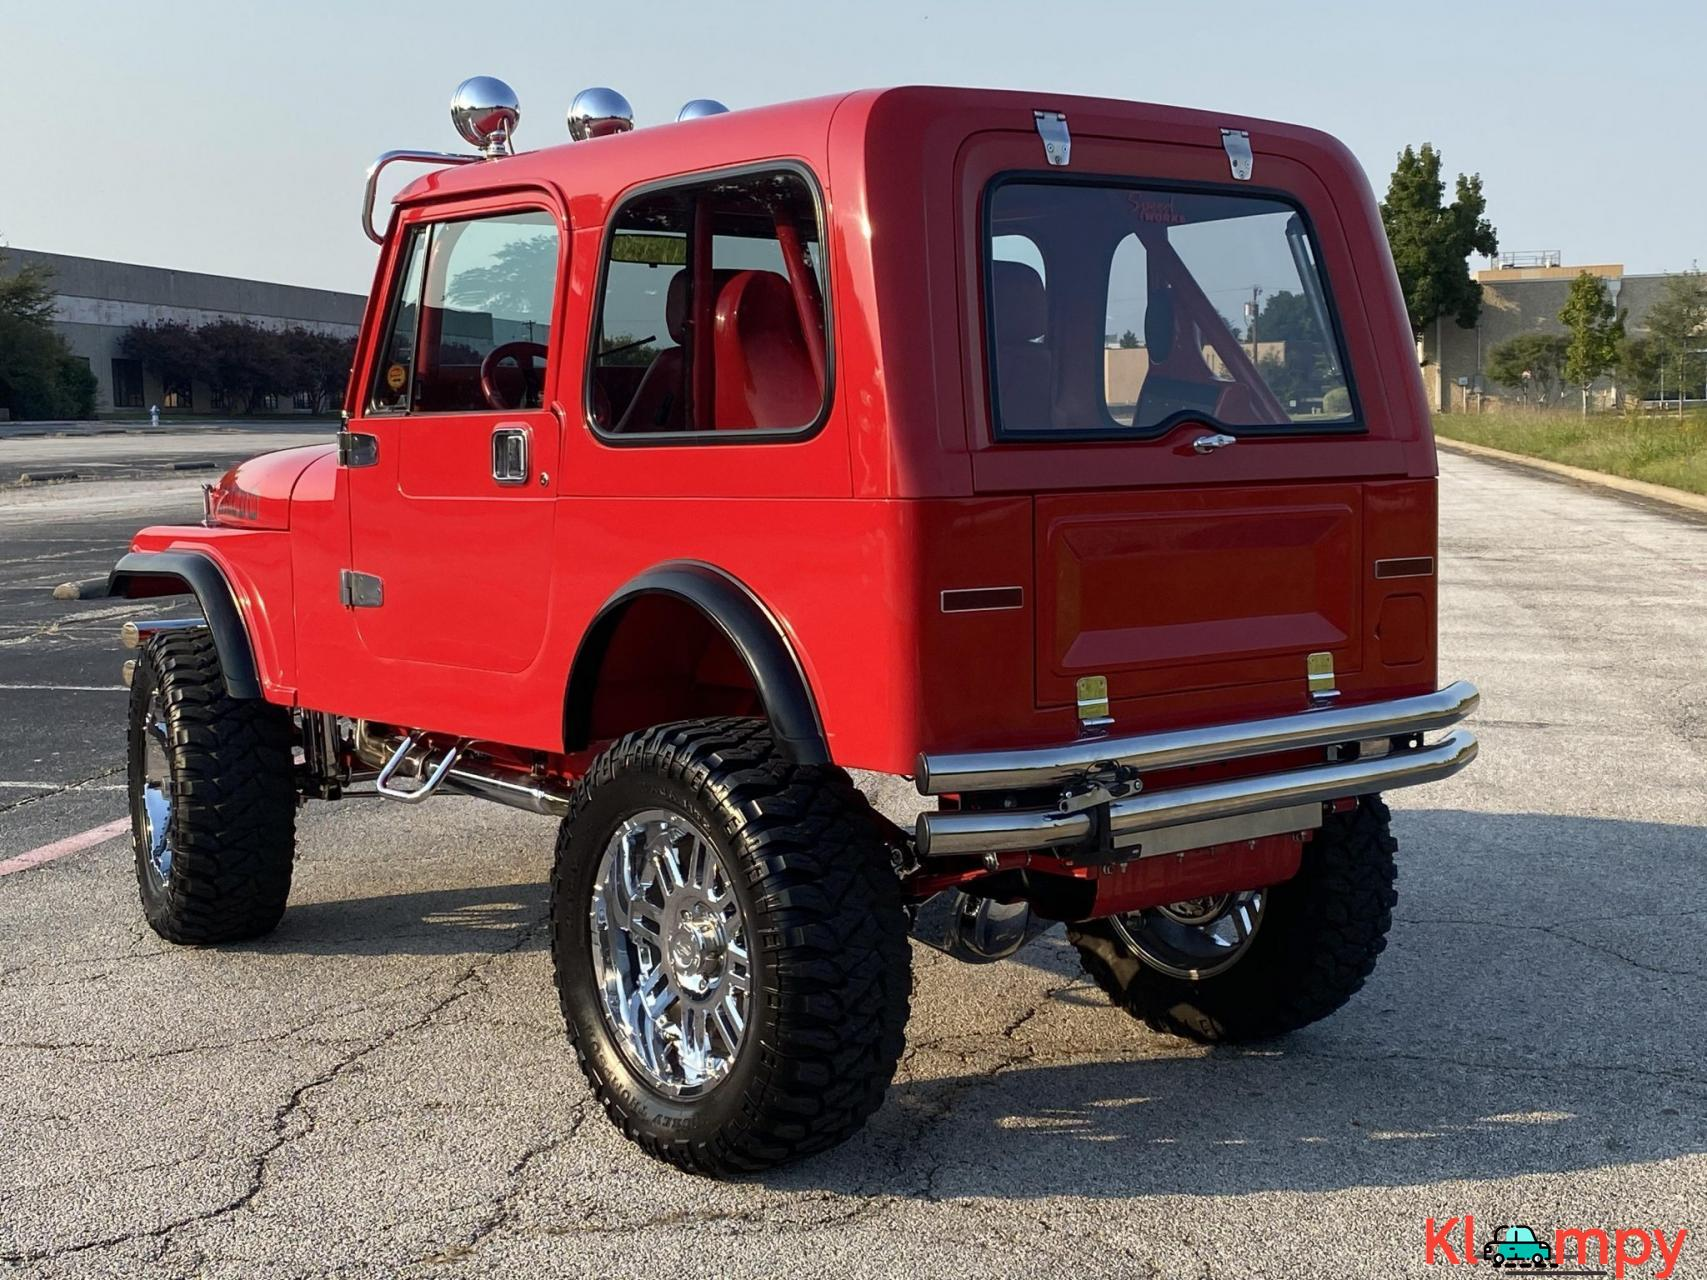 1983 Jeep CJ-7 Supercharged 350 V8 - 5/20